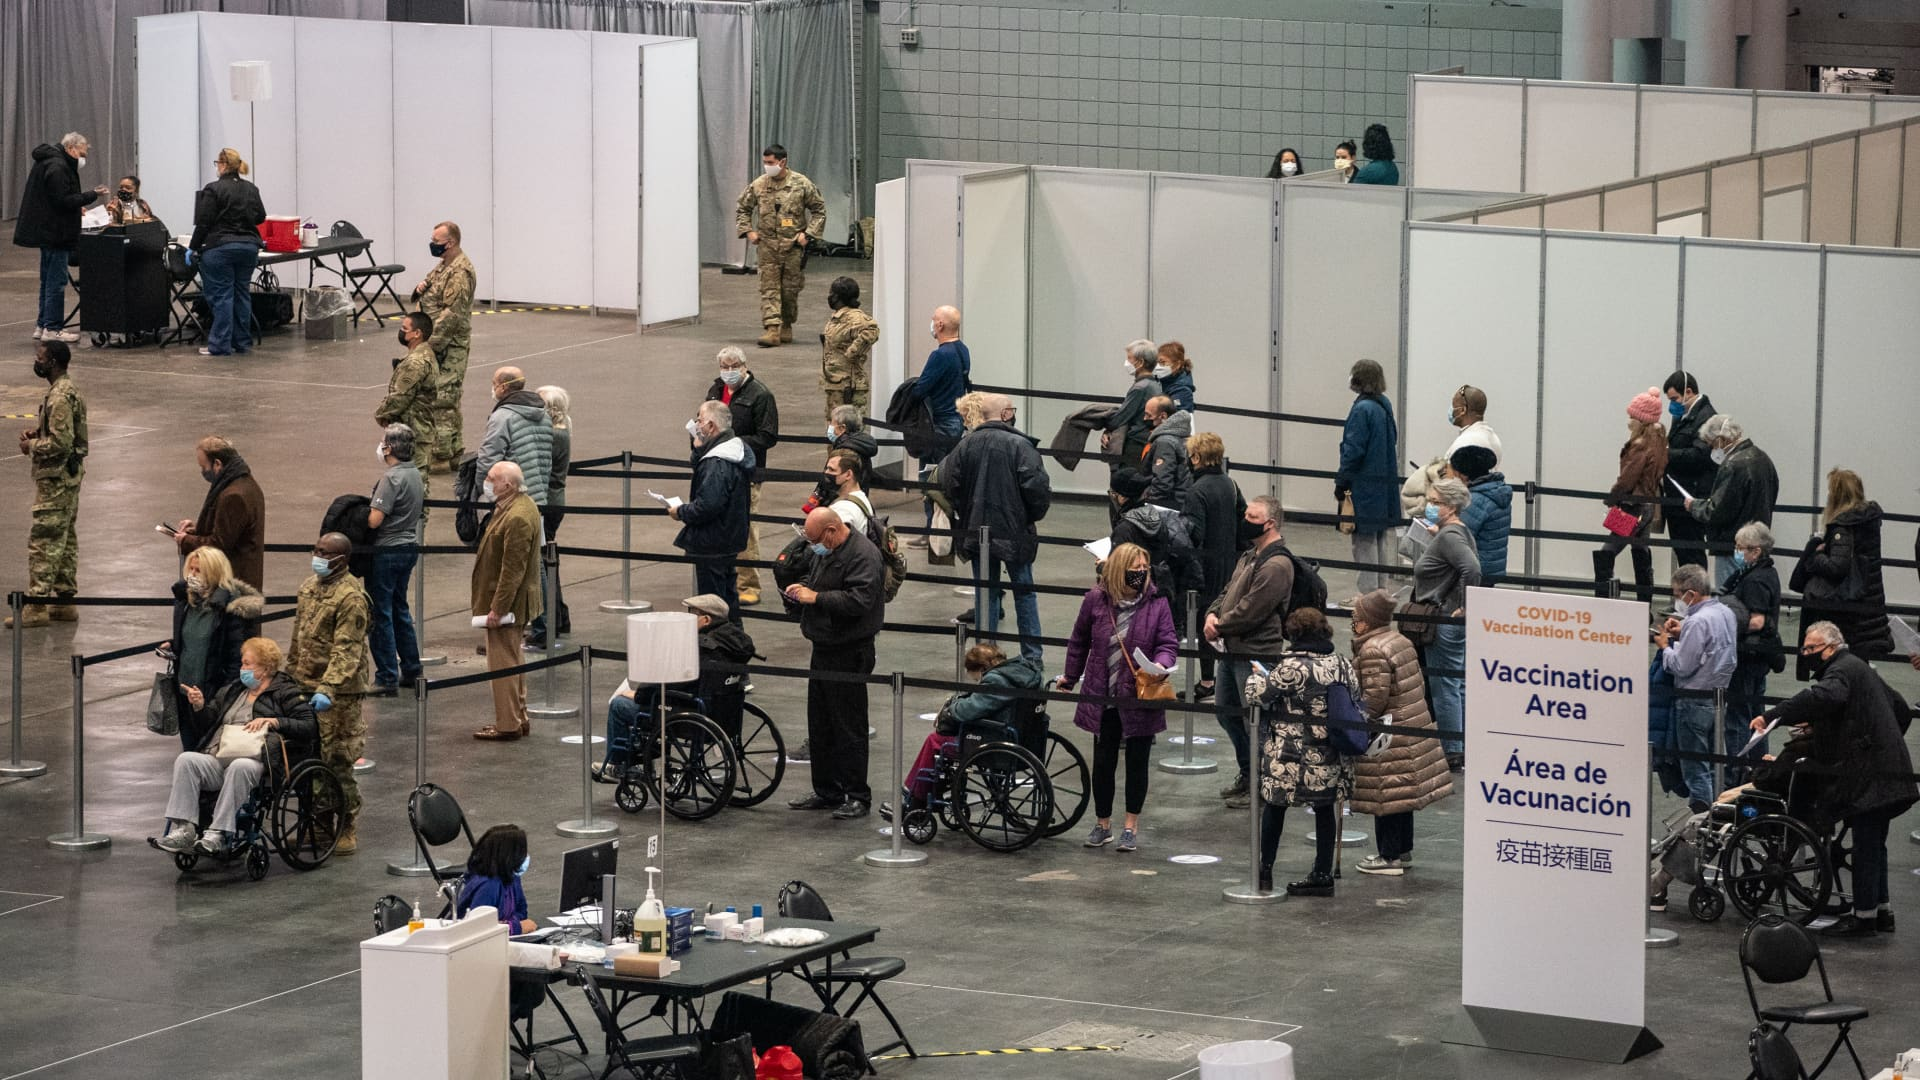 People stand in line to receive a dose of the Covid-19 vaccination at the Jacob Javits Convention Center in New York, U.S., on Wednesday, Jan. 13, 2021.